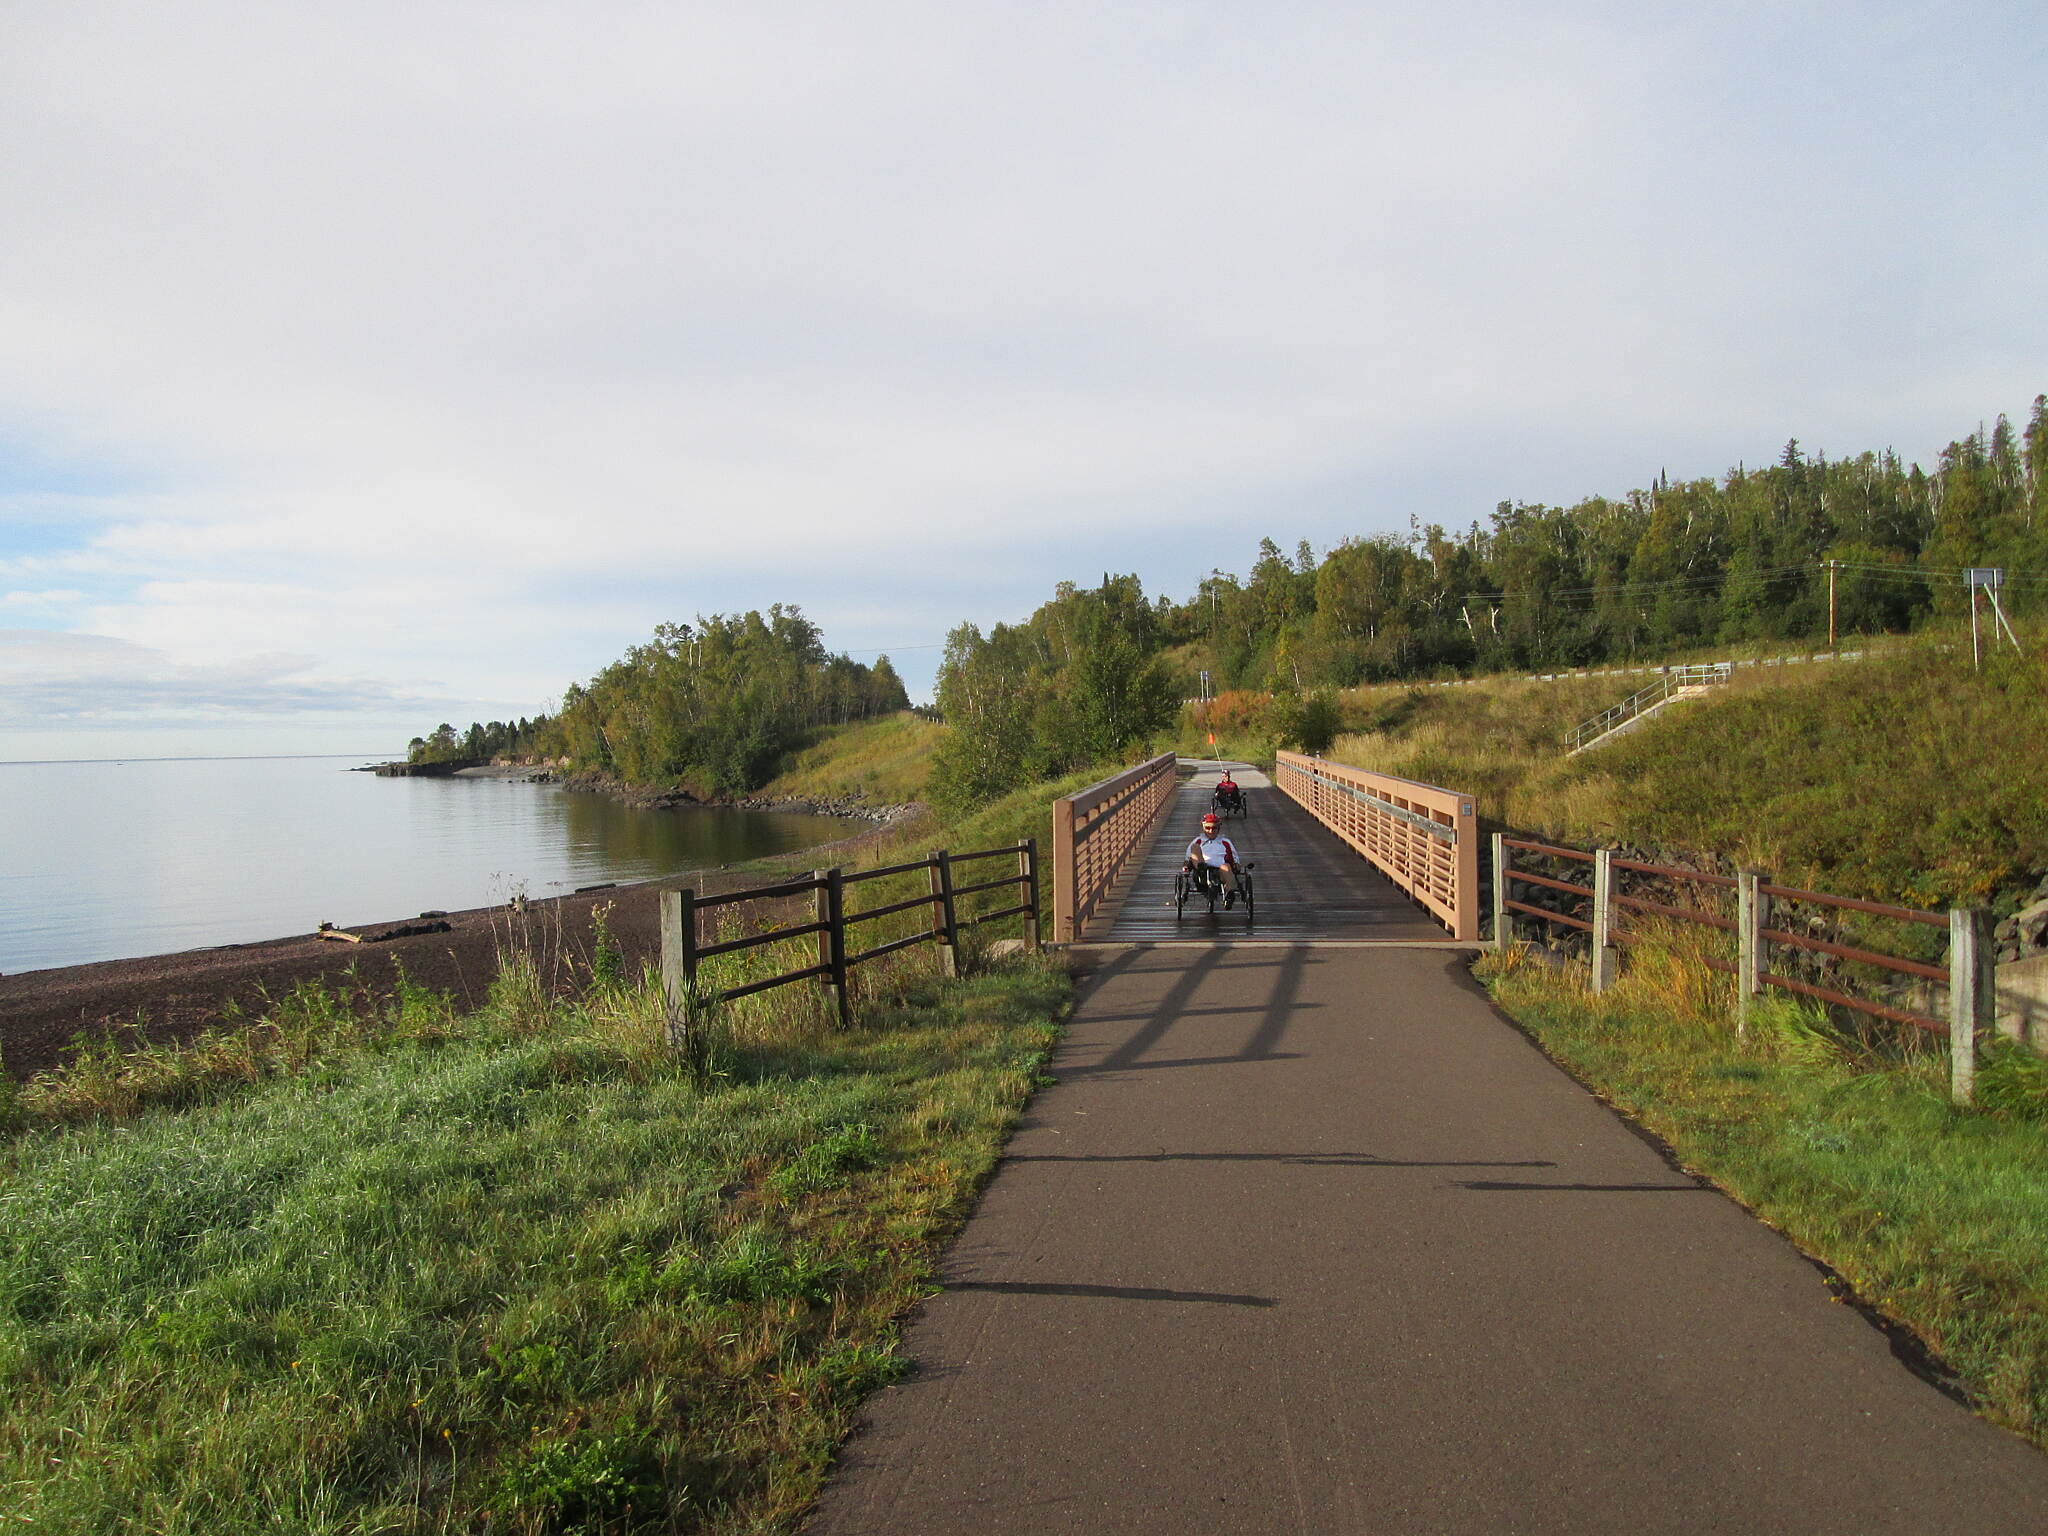 Gitchi-Gami State Trail Bridge Beside Lake Superior Riding trikes across a bridge beside Lake Superior on the Gitchi-Gami Trail North of Gooseberry Falls State Park, Sept 2015